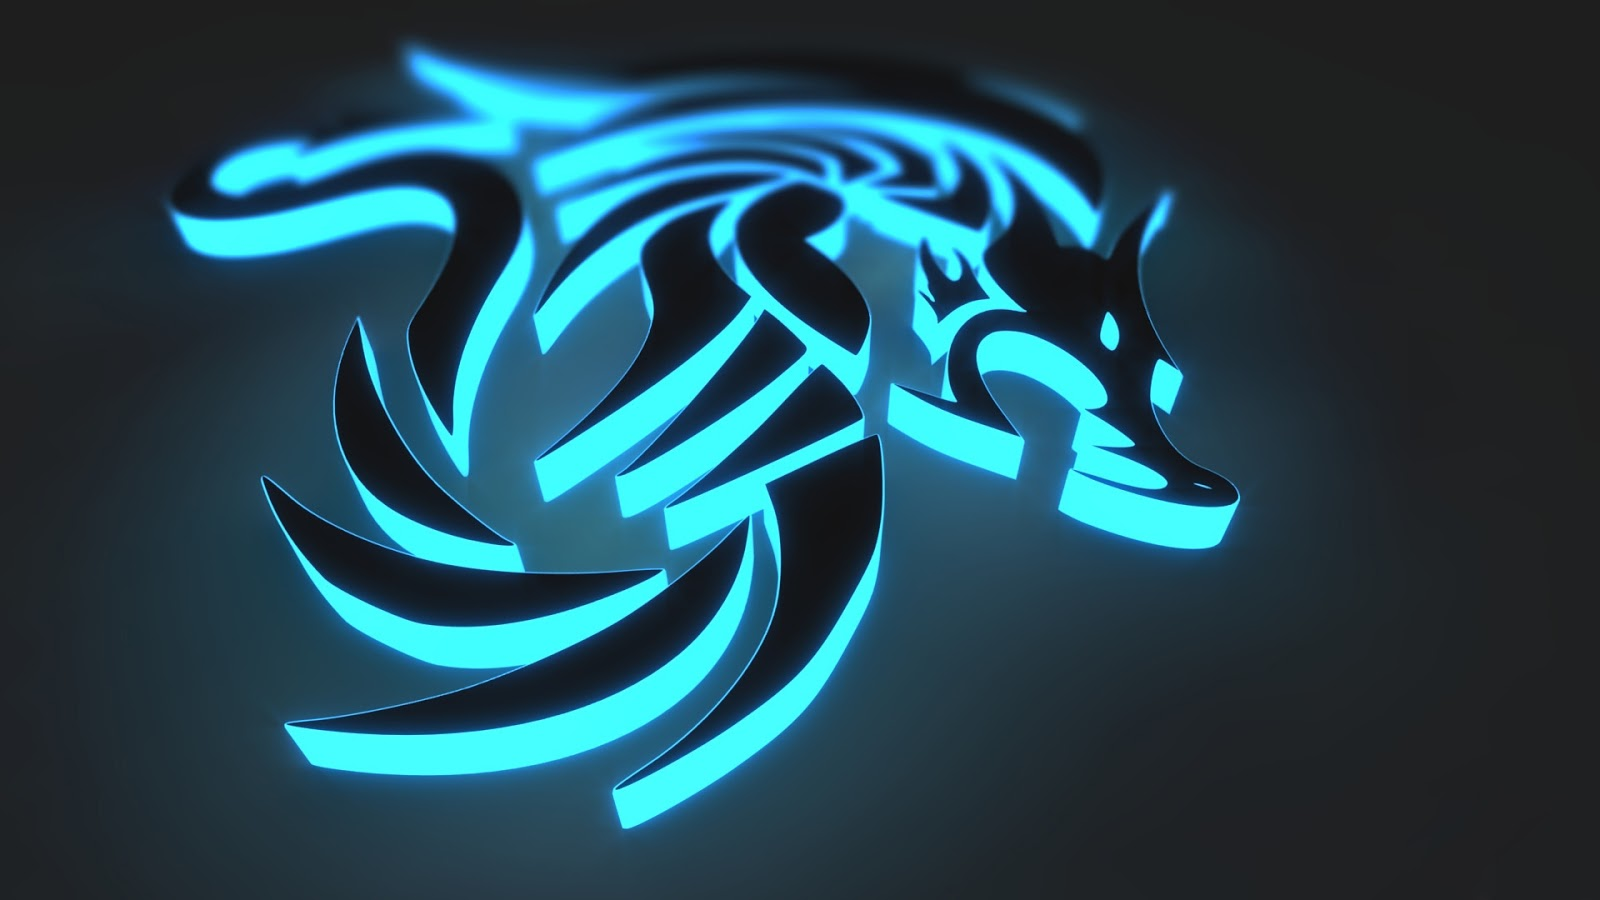 Neon Wallpapers for Android - Neon Blue Dragon